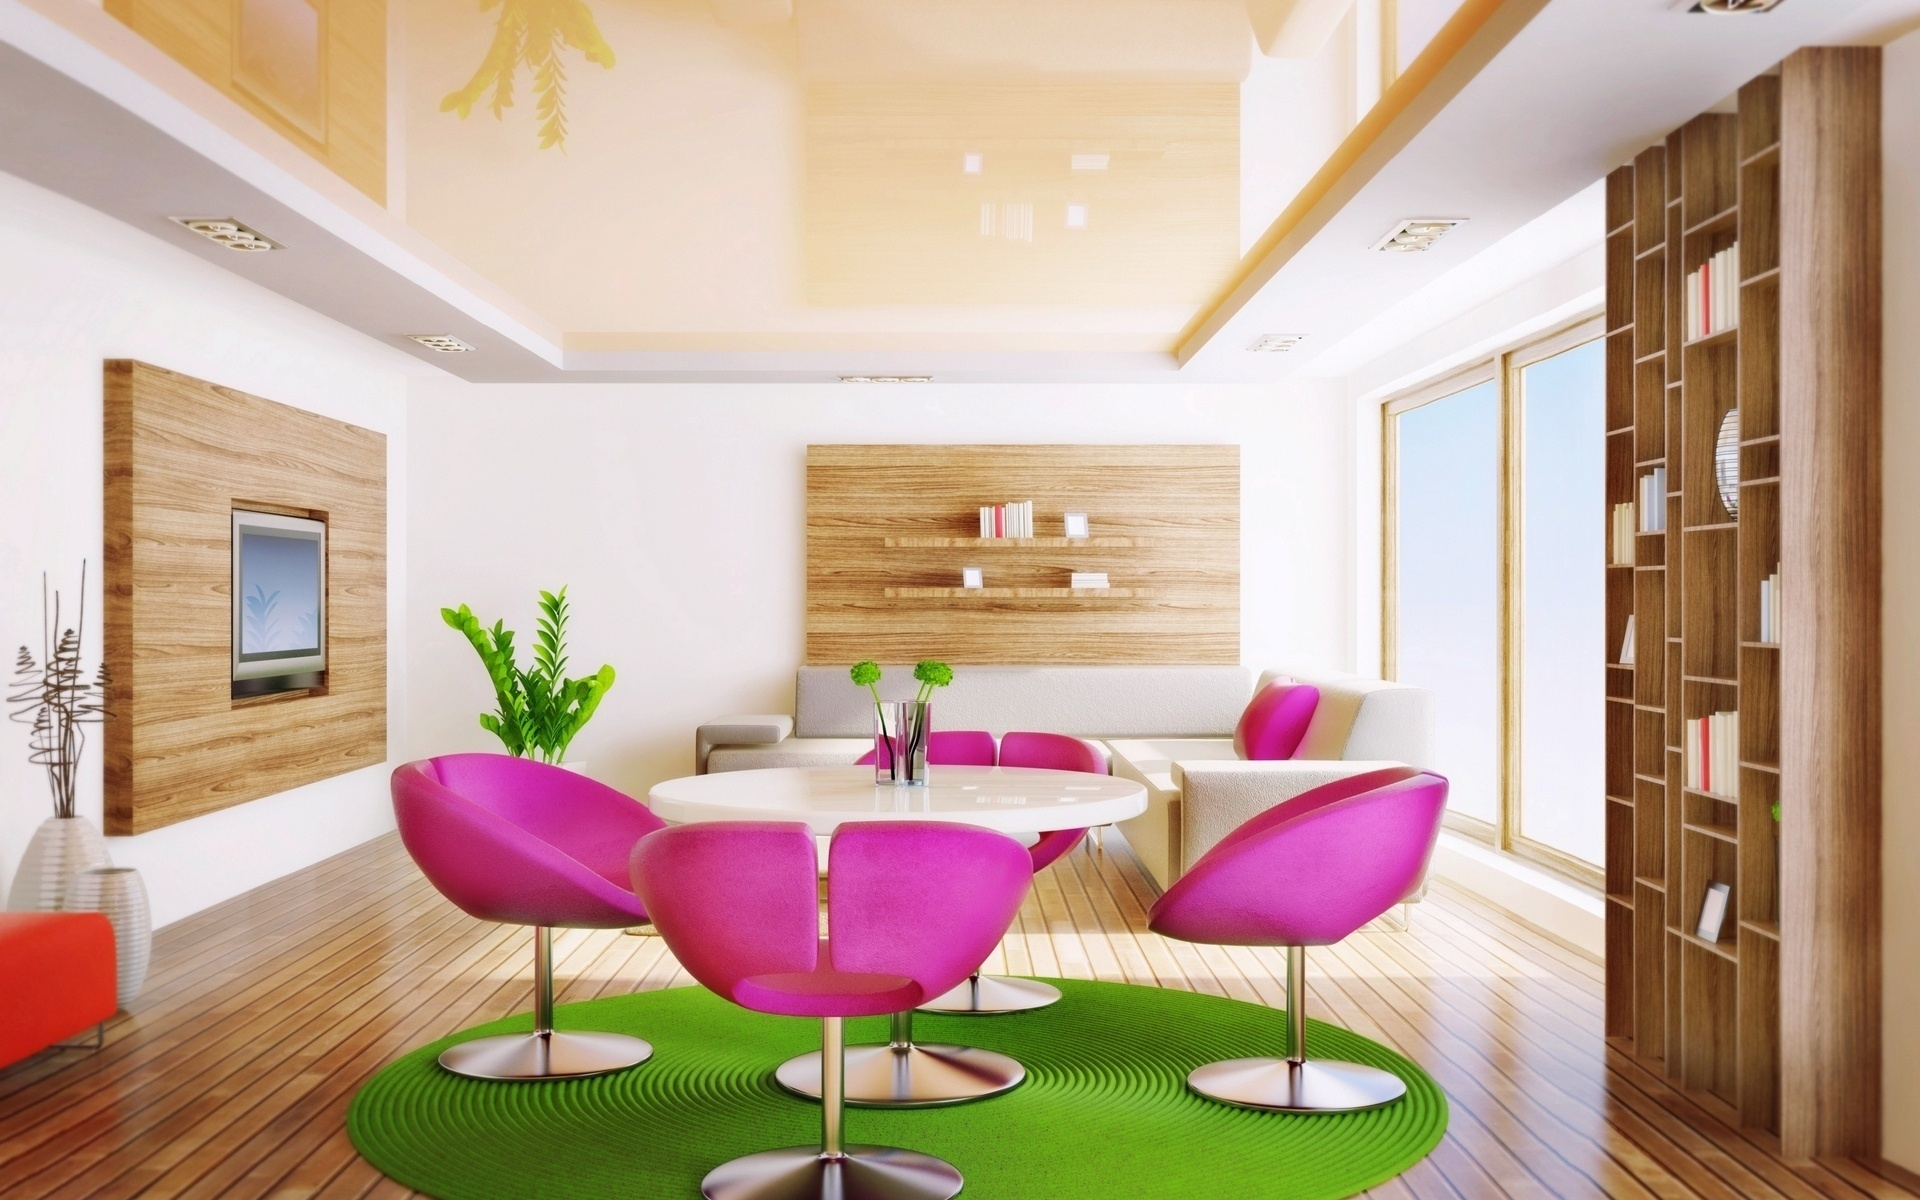 green and pink interior room 1920 x 1200 download close